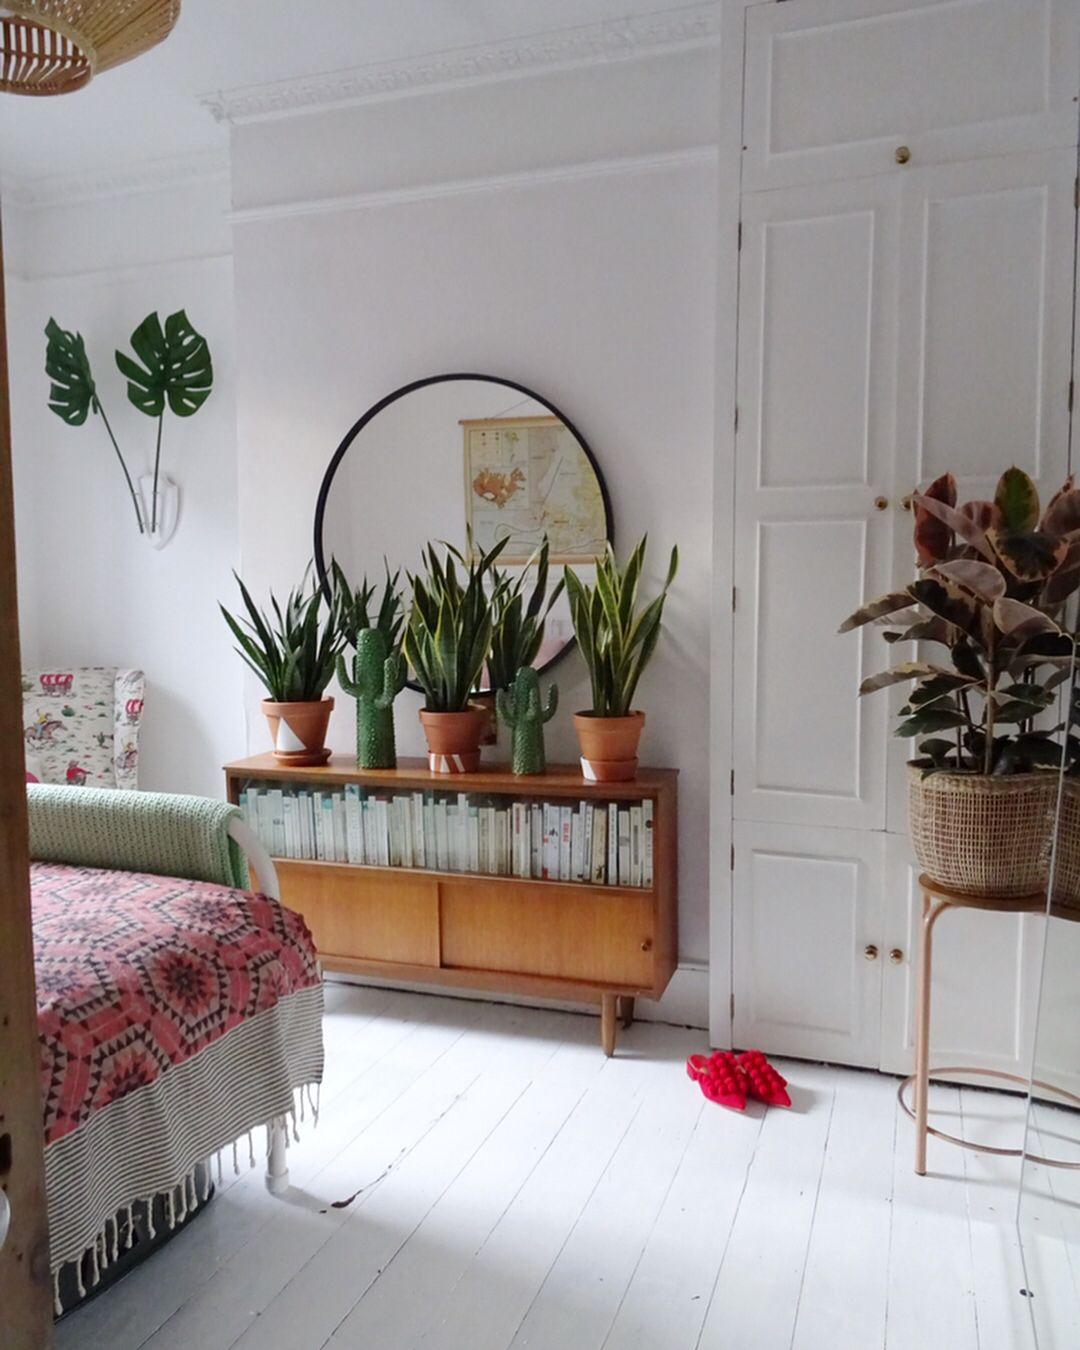 vintage bedroom ideas with plants Boho bedroom - white floors, round mirror, vintage sideboard and mother in law's tongue plants